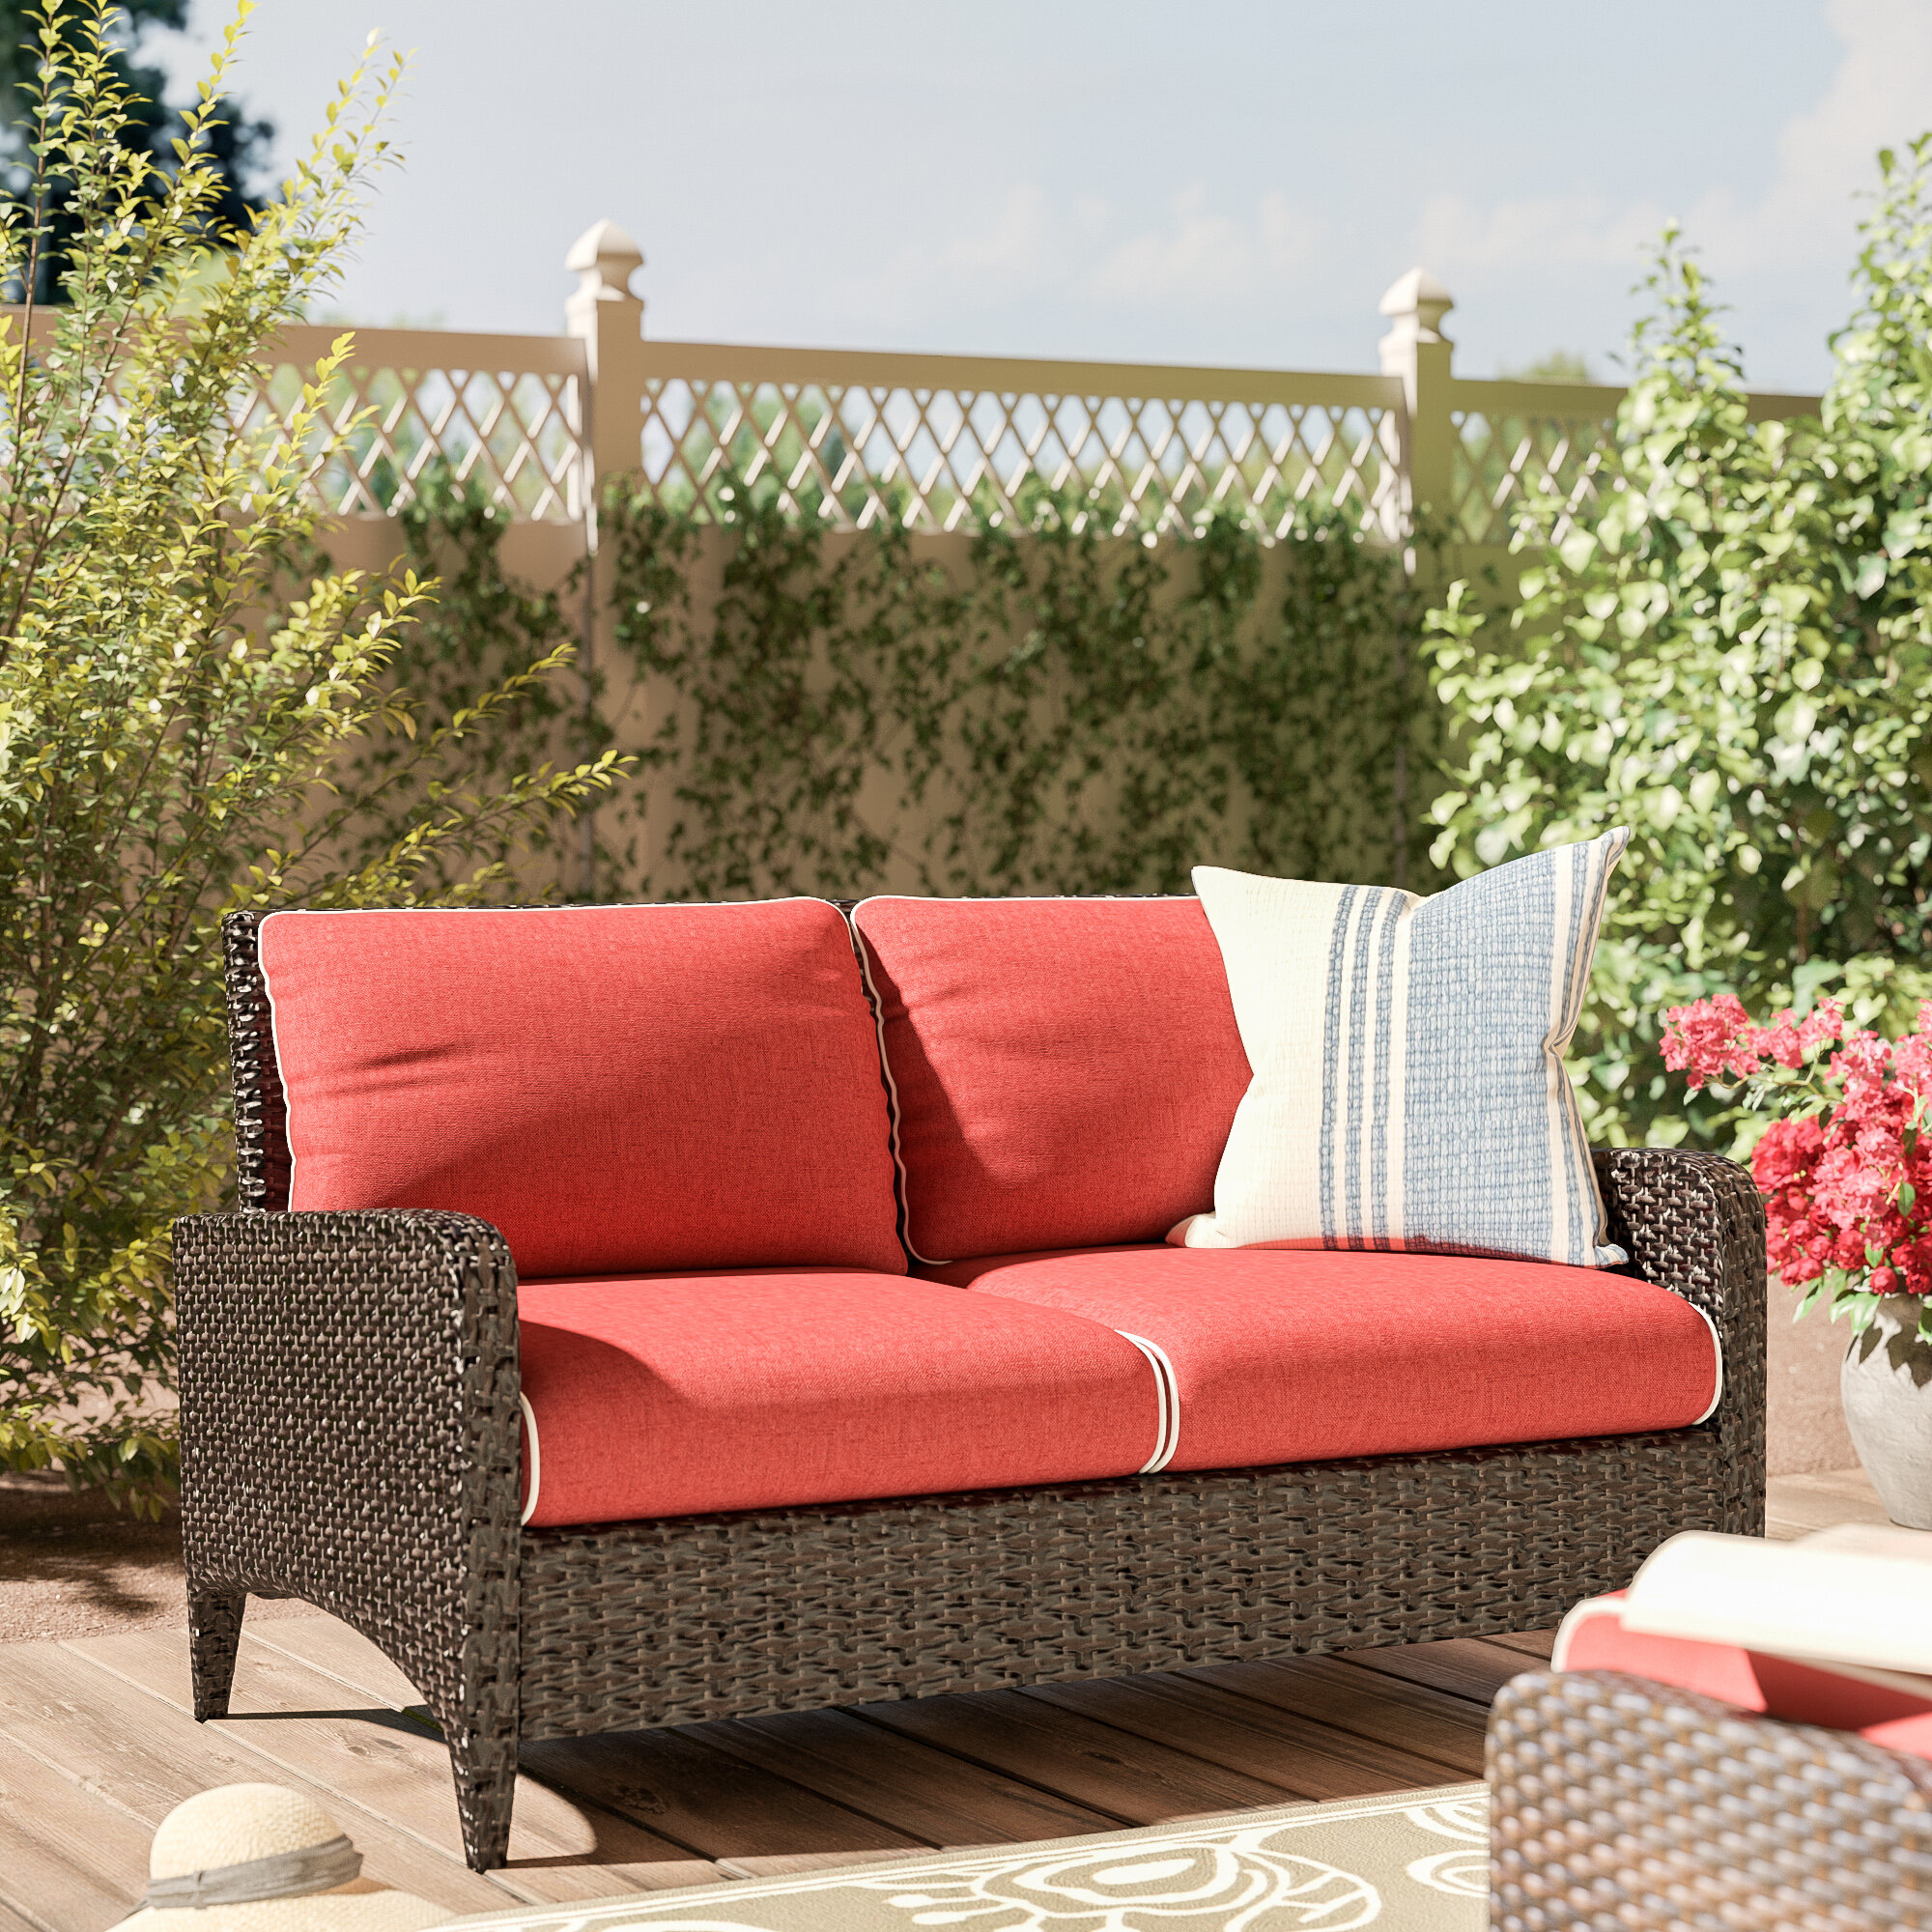 Cool World Menagerie Mosca Patio Loveseat With Cushions Reviews Beutiful Home Inspiration Aditmahrainfo